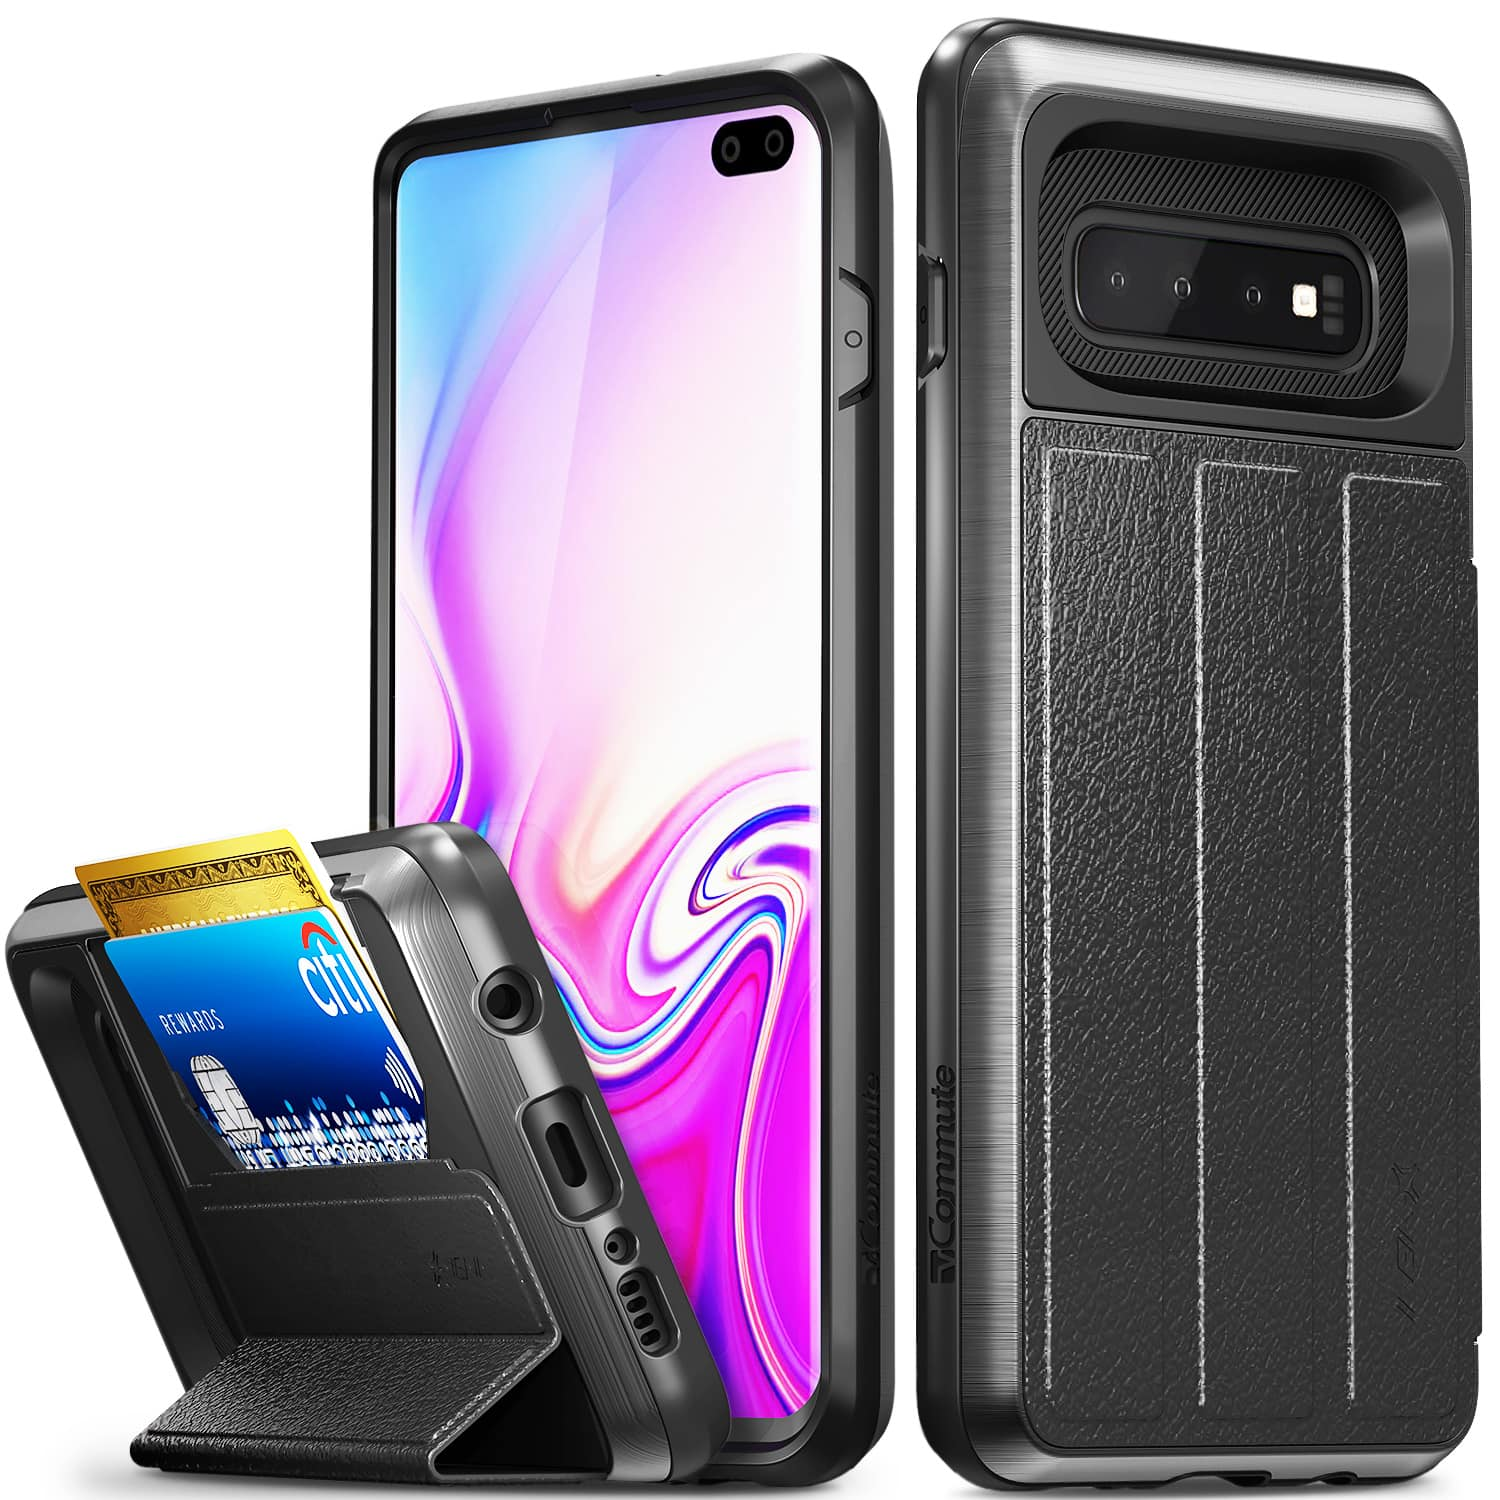 Vena Galaxy S10+, Galaxy S10, Galaxy S10E, iPhone XS Max, iPhone XR, iPhone XS/X, Pixel 3, Pixel 3XL Cases and Car Mounts: Starting from $3.00 + Free Shipping